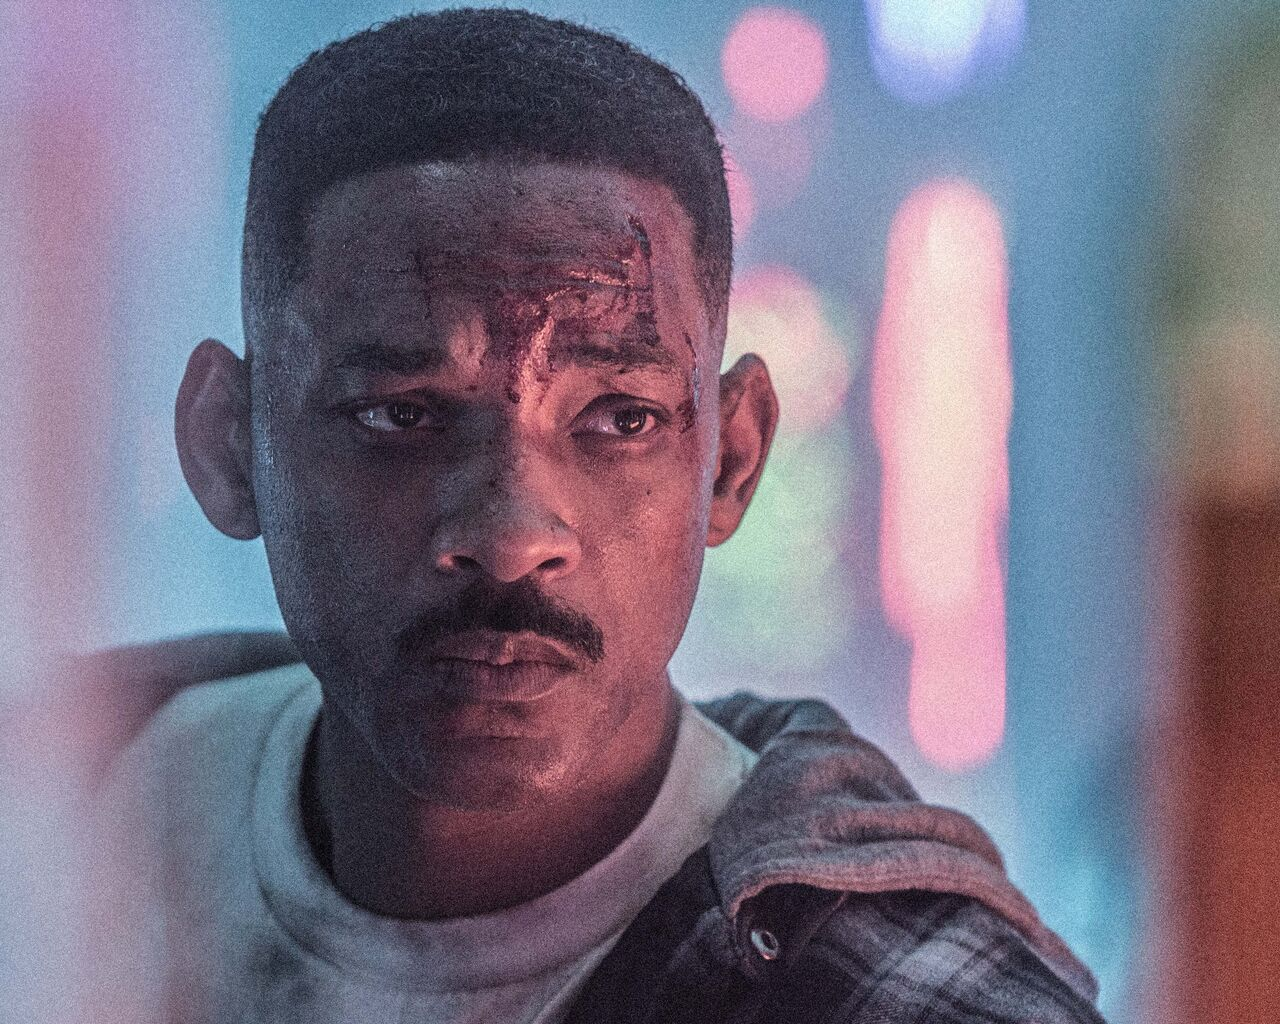 will-smith-bright-movie-5k-dz.jpg